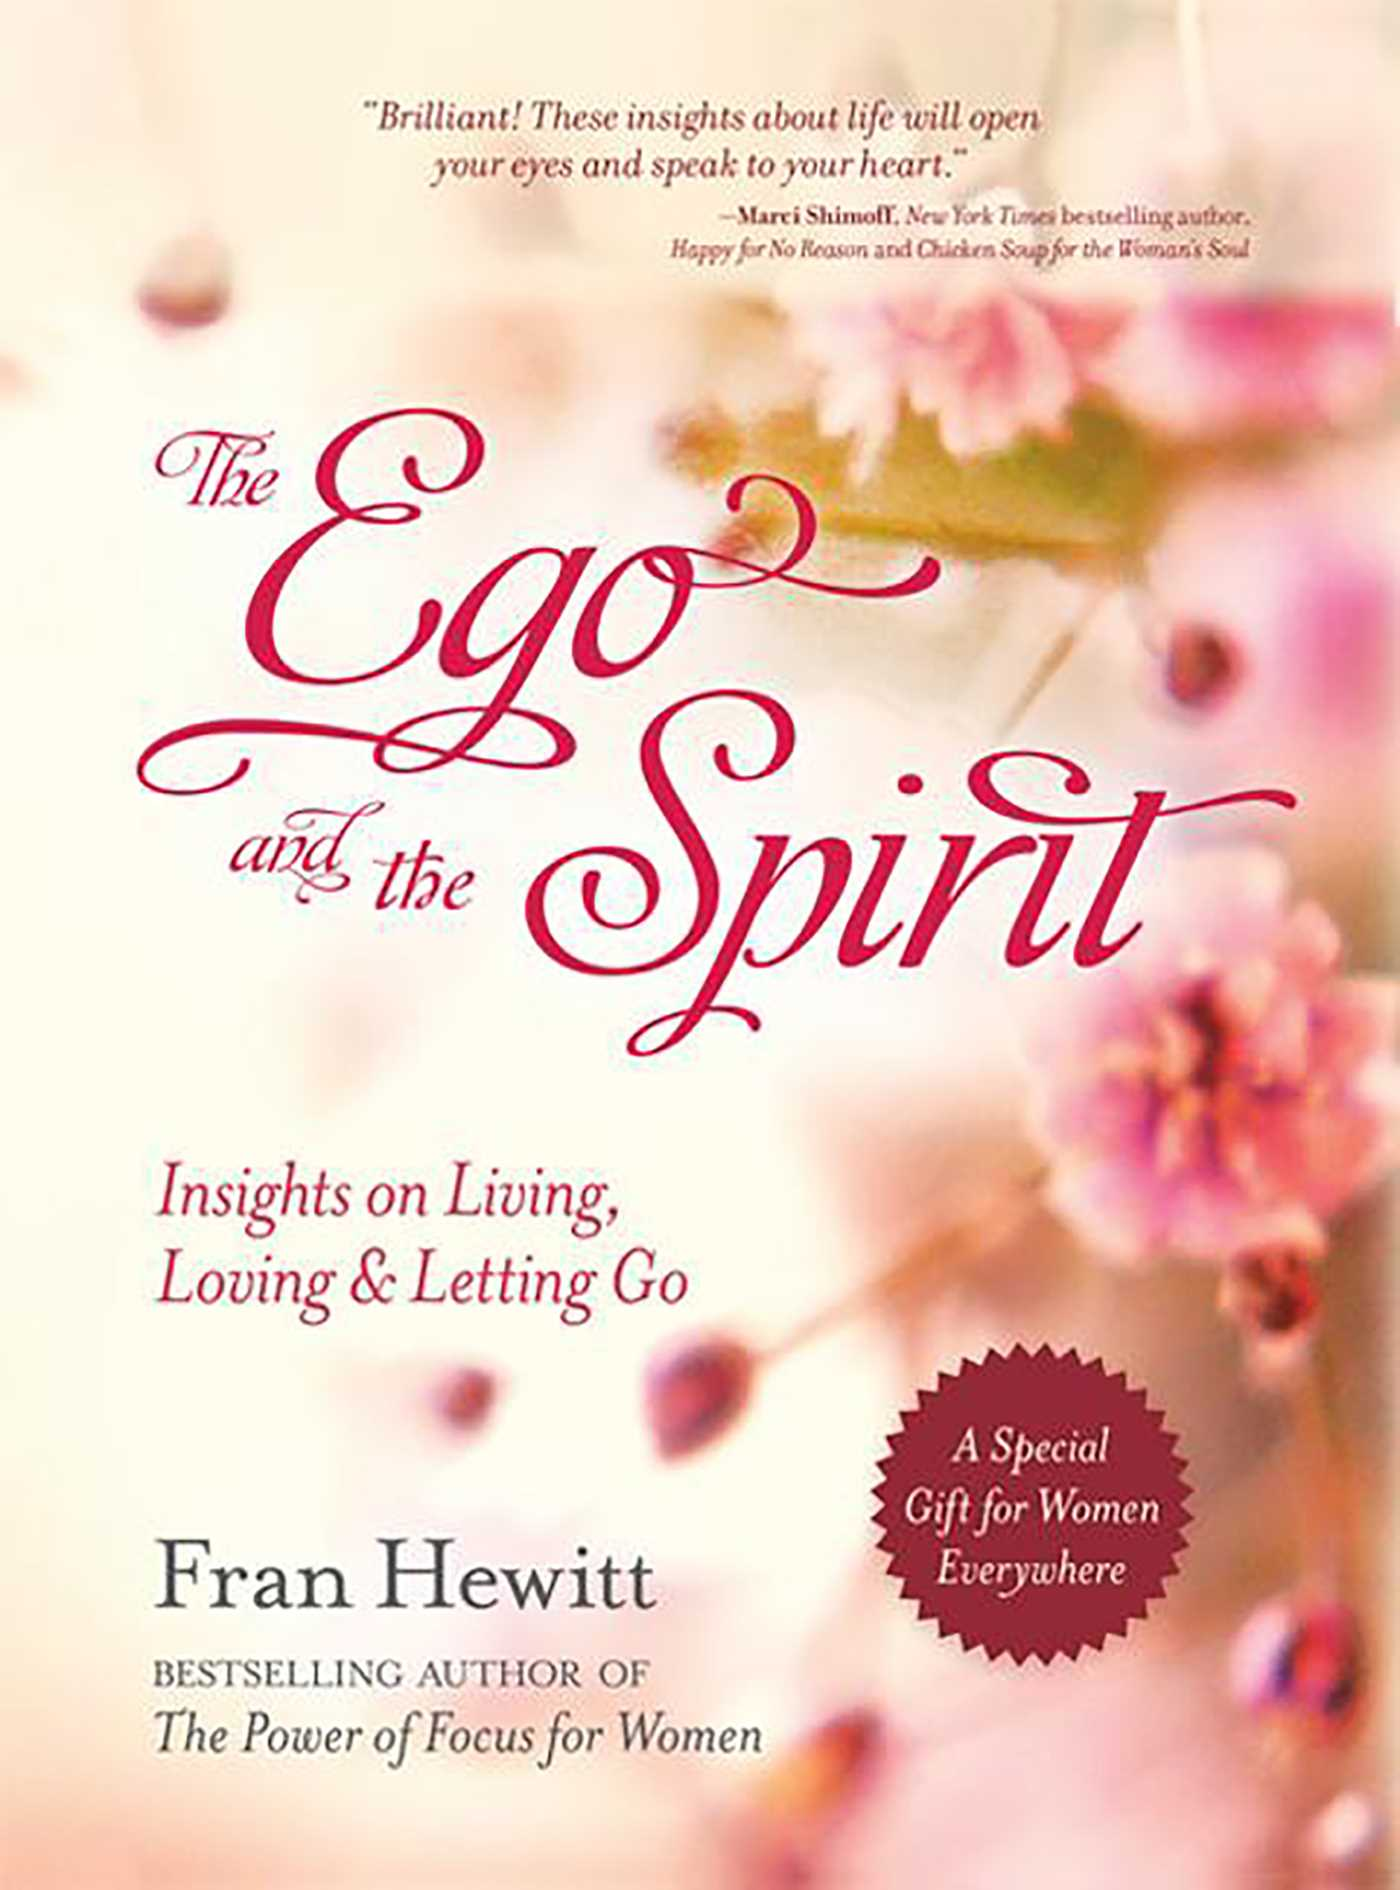 (The) Ego and Spirit | Psychology & Self-Improvement